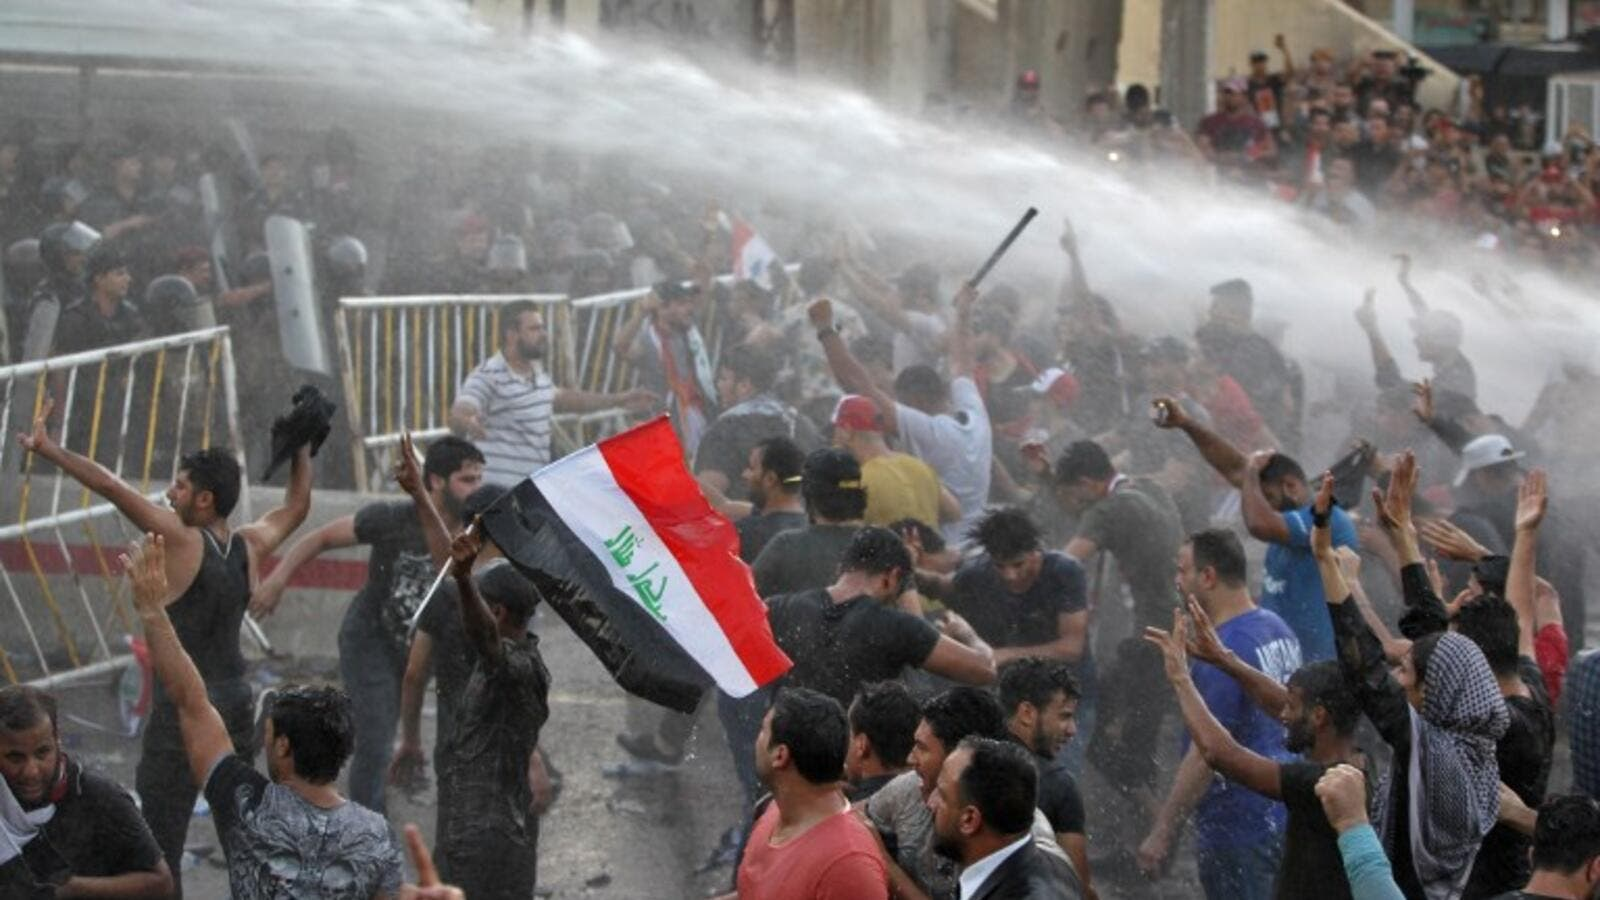 Iraqi protesters chanting slogans and waving national flags are sprayed with water cannon by security forces in clashes in protests against unemployment and lack of basic services Baghdad's Tahrir Square on July 20, 2018. (AFP/Ahmad Al-Rubaye)